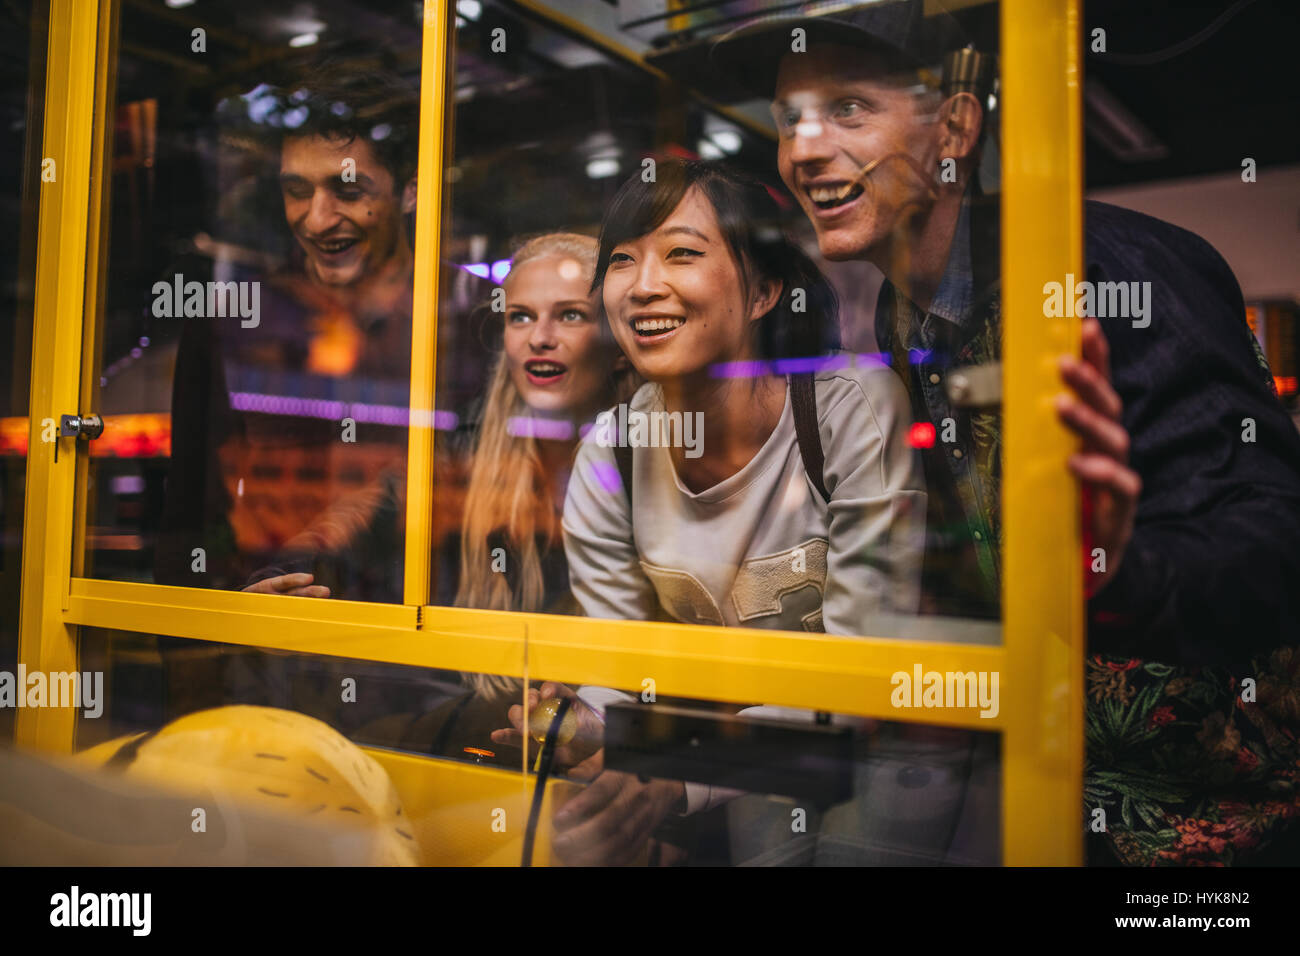 Happy young friends playing toy grabbing game at amusement park. - Stock Image